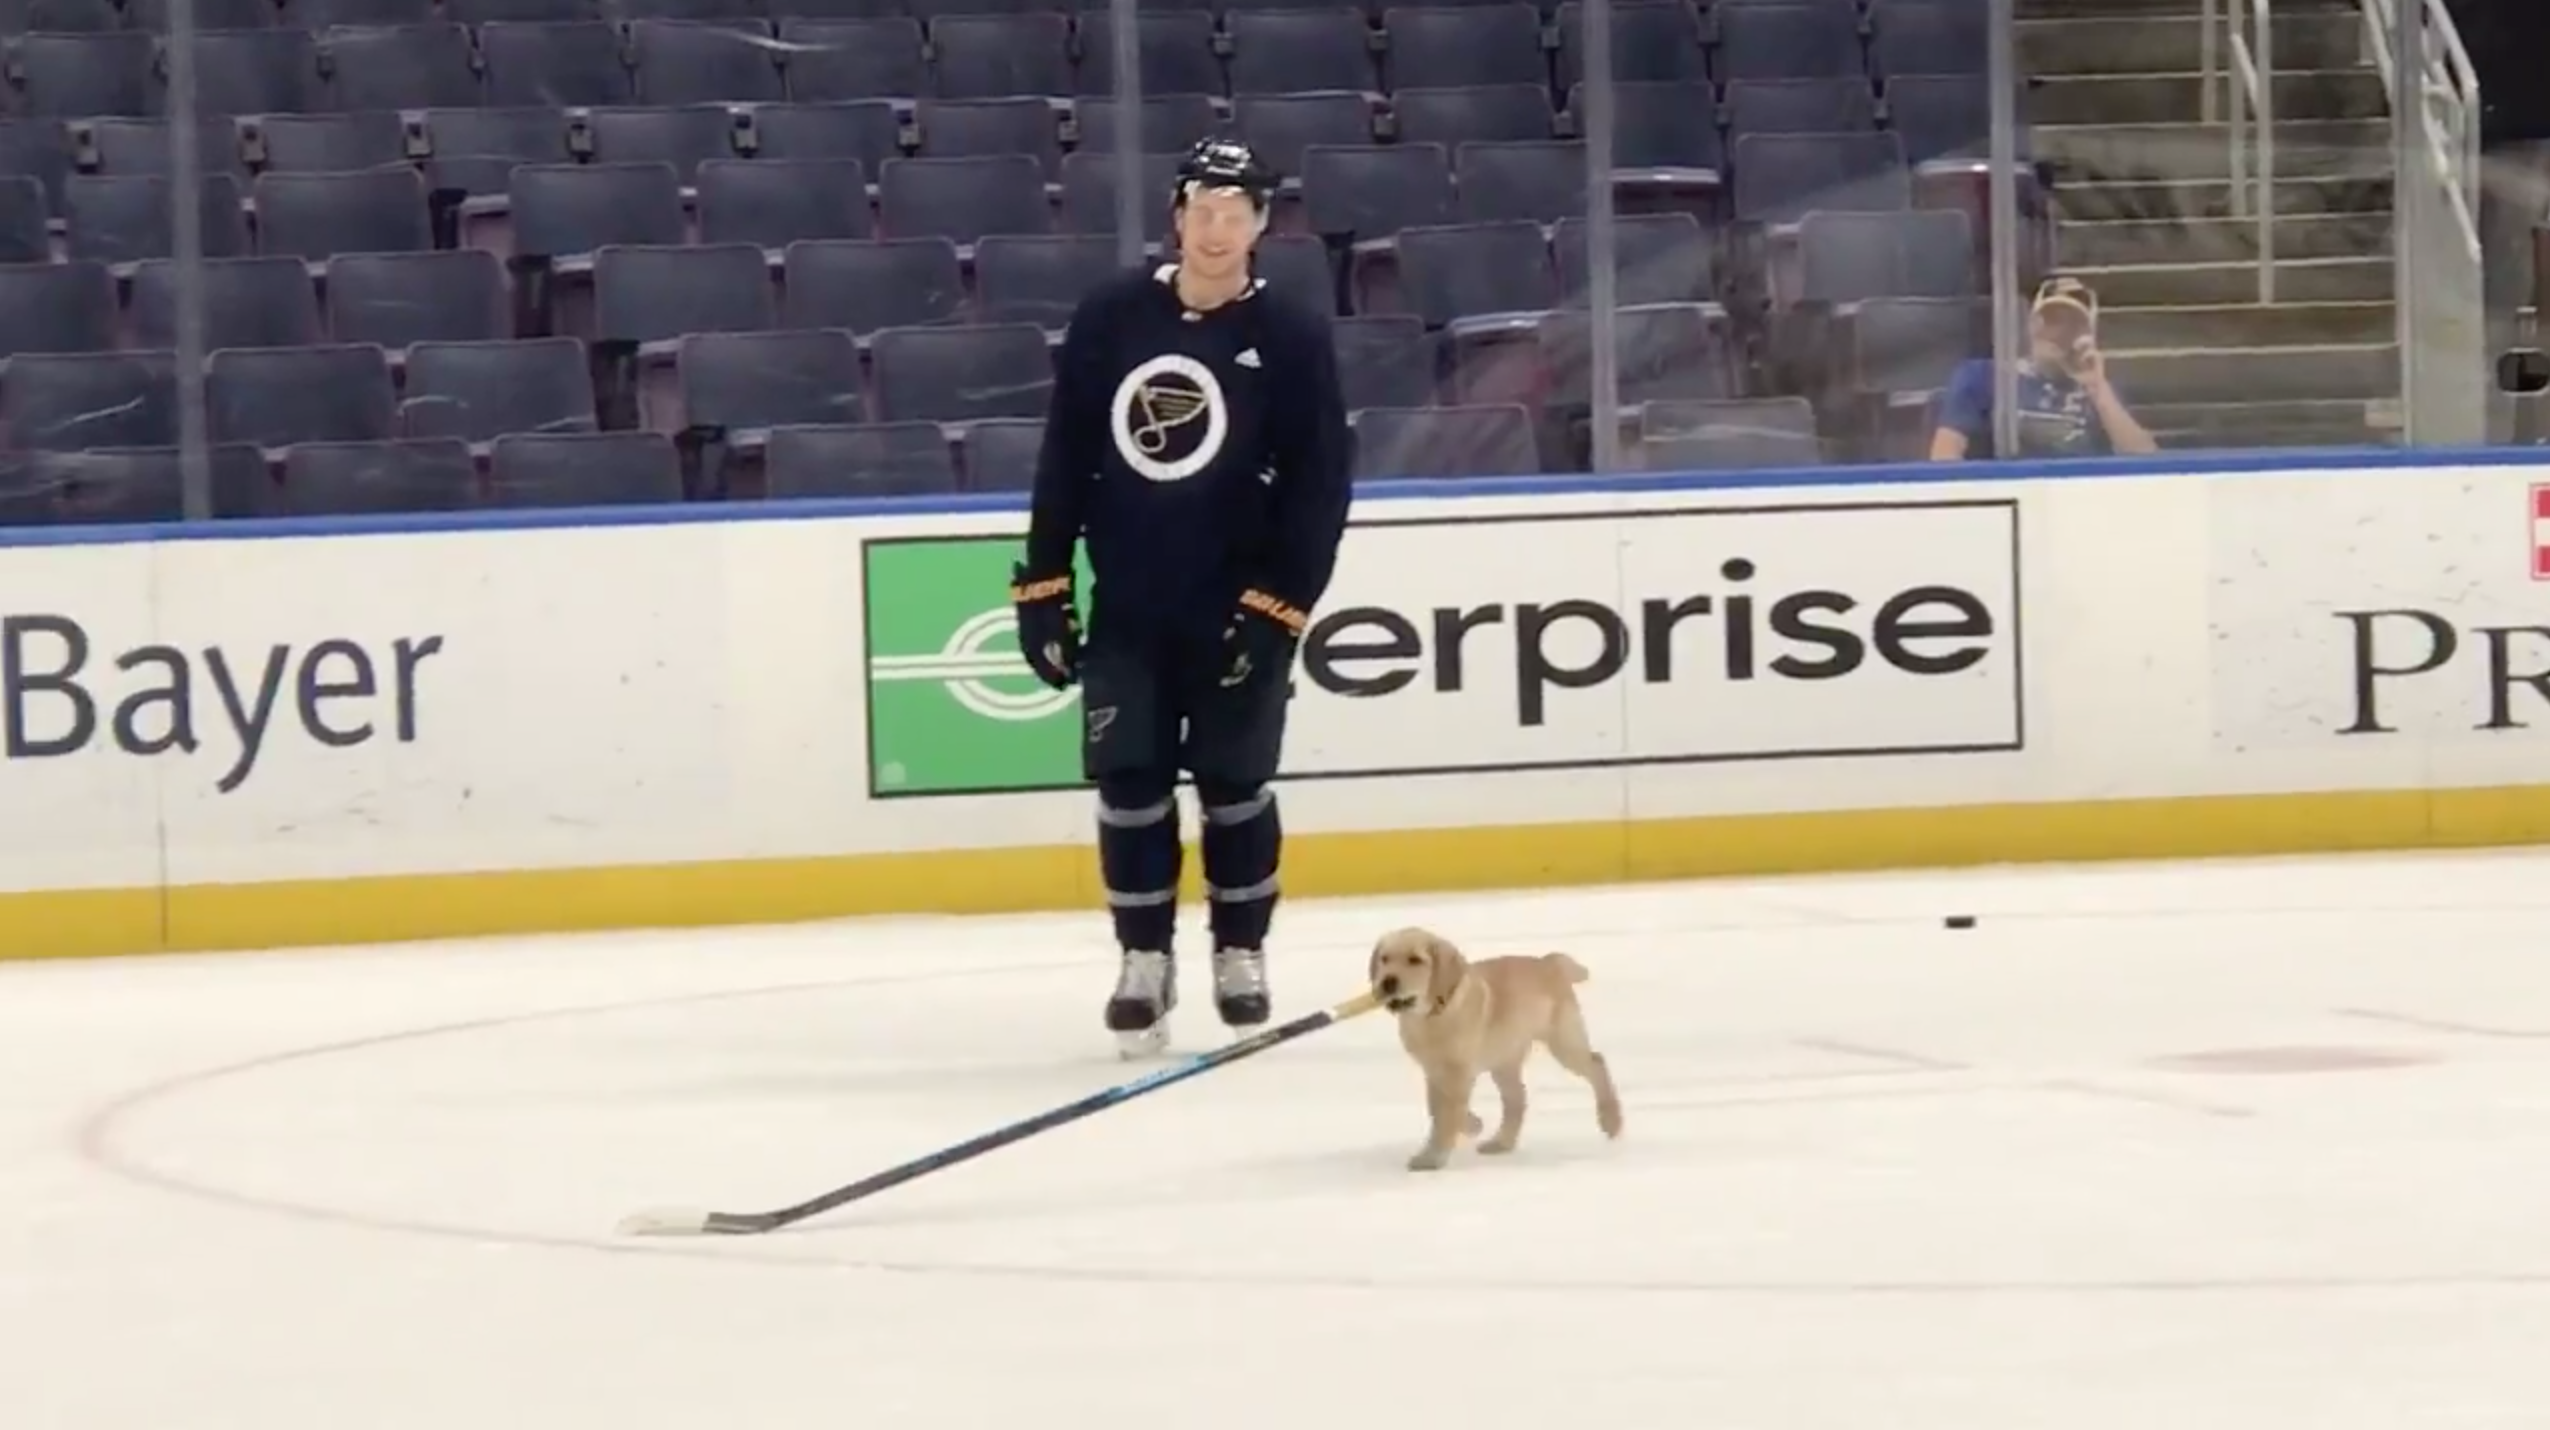 St. Louis Blues team puppy Barclay practices on ice (video)